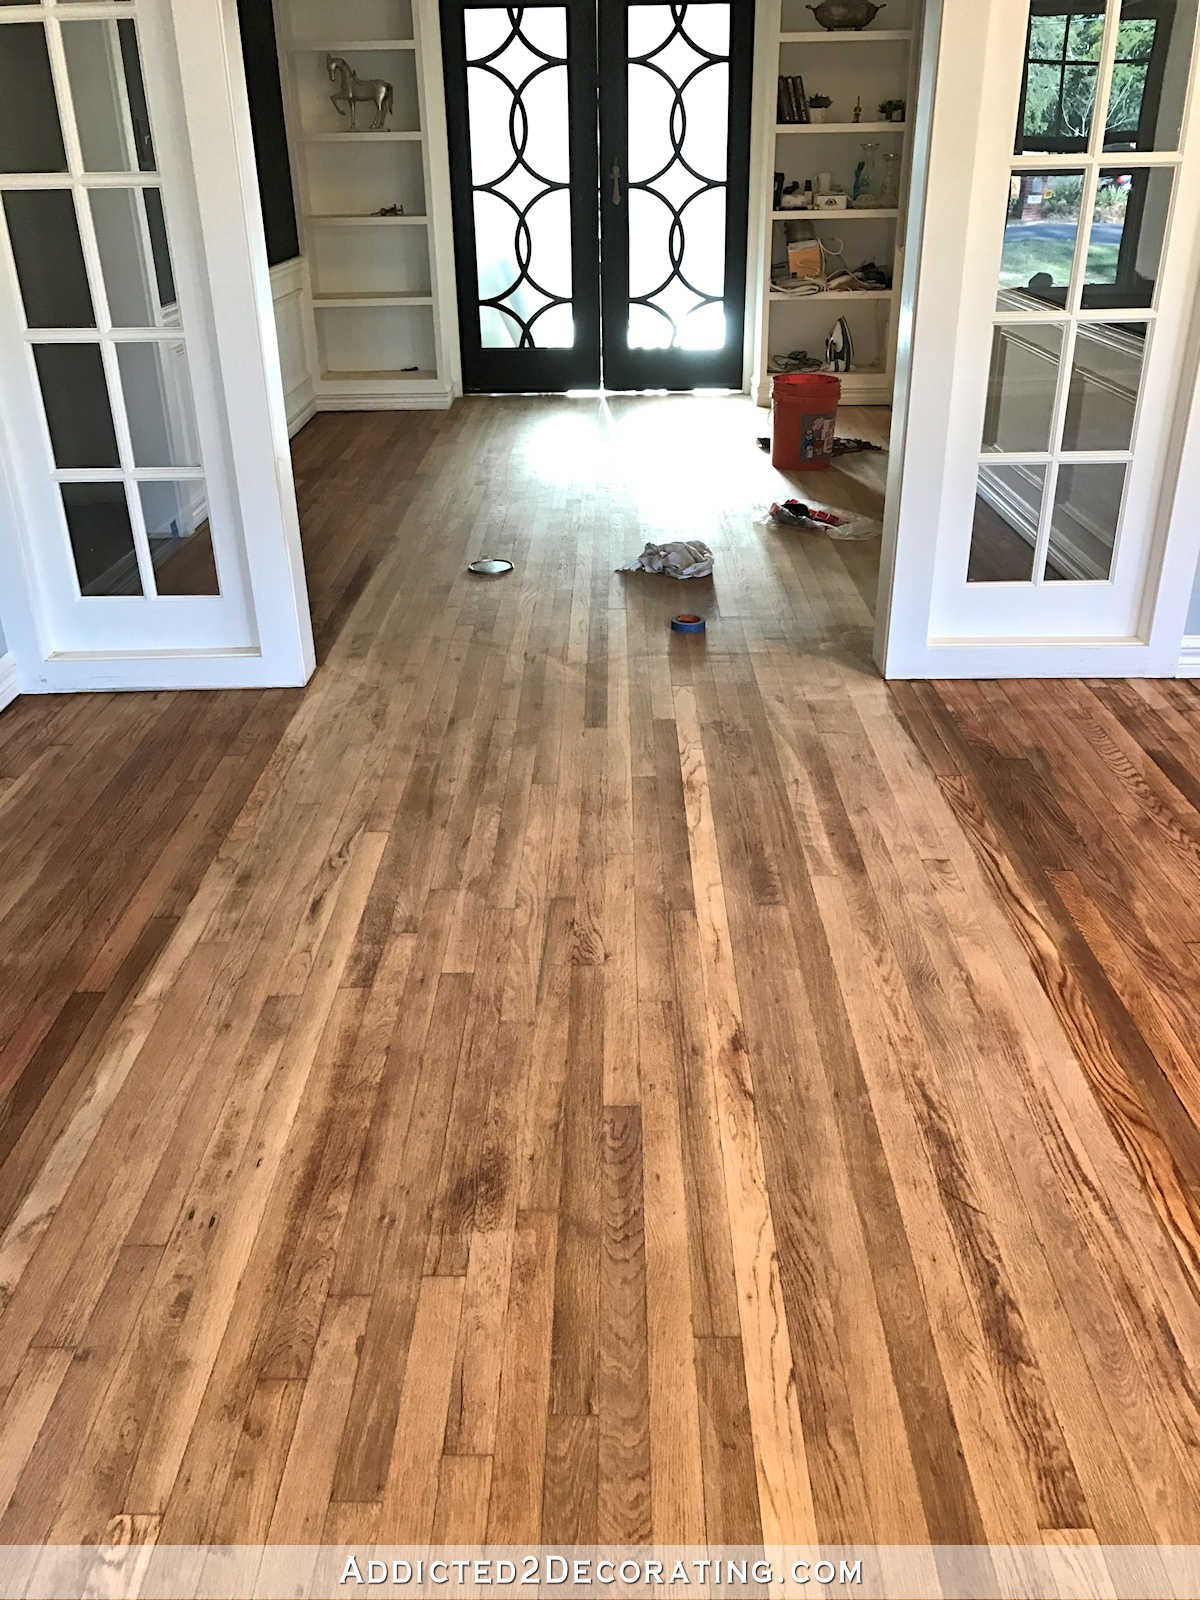 Price for Sanding Hardwood Floors Of 19 Unique How Much Does It Cost to Refinish Hardwood Floors Gallery for How Much Does It Cost to Refinish Hardwood Floors Unique Adventures In Staining My Red Oak